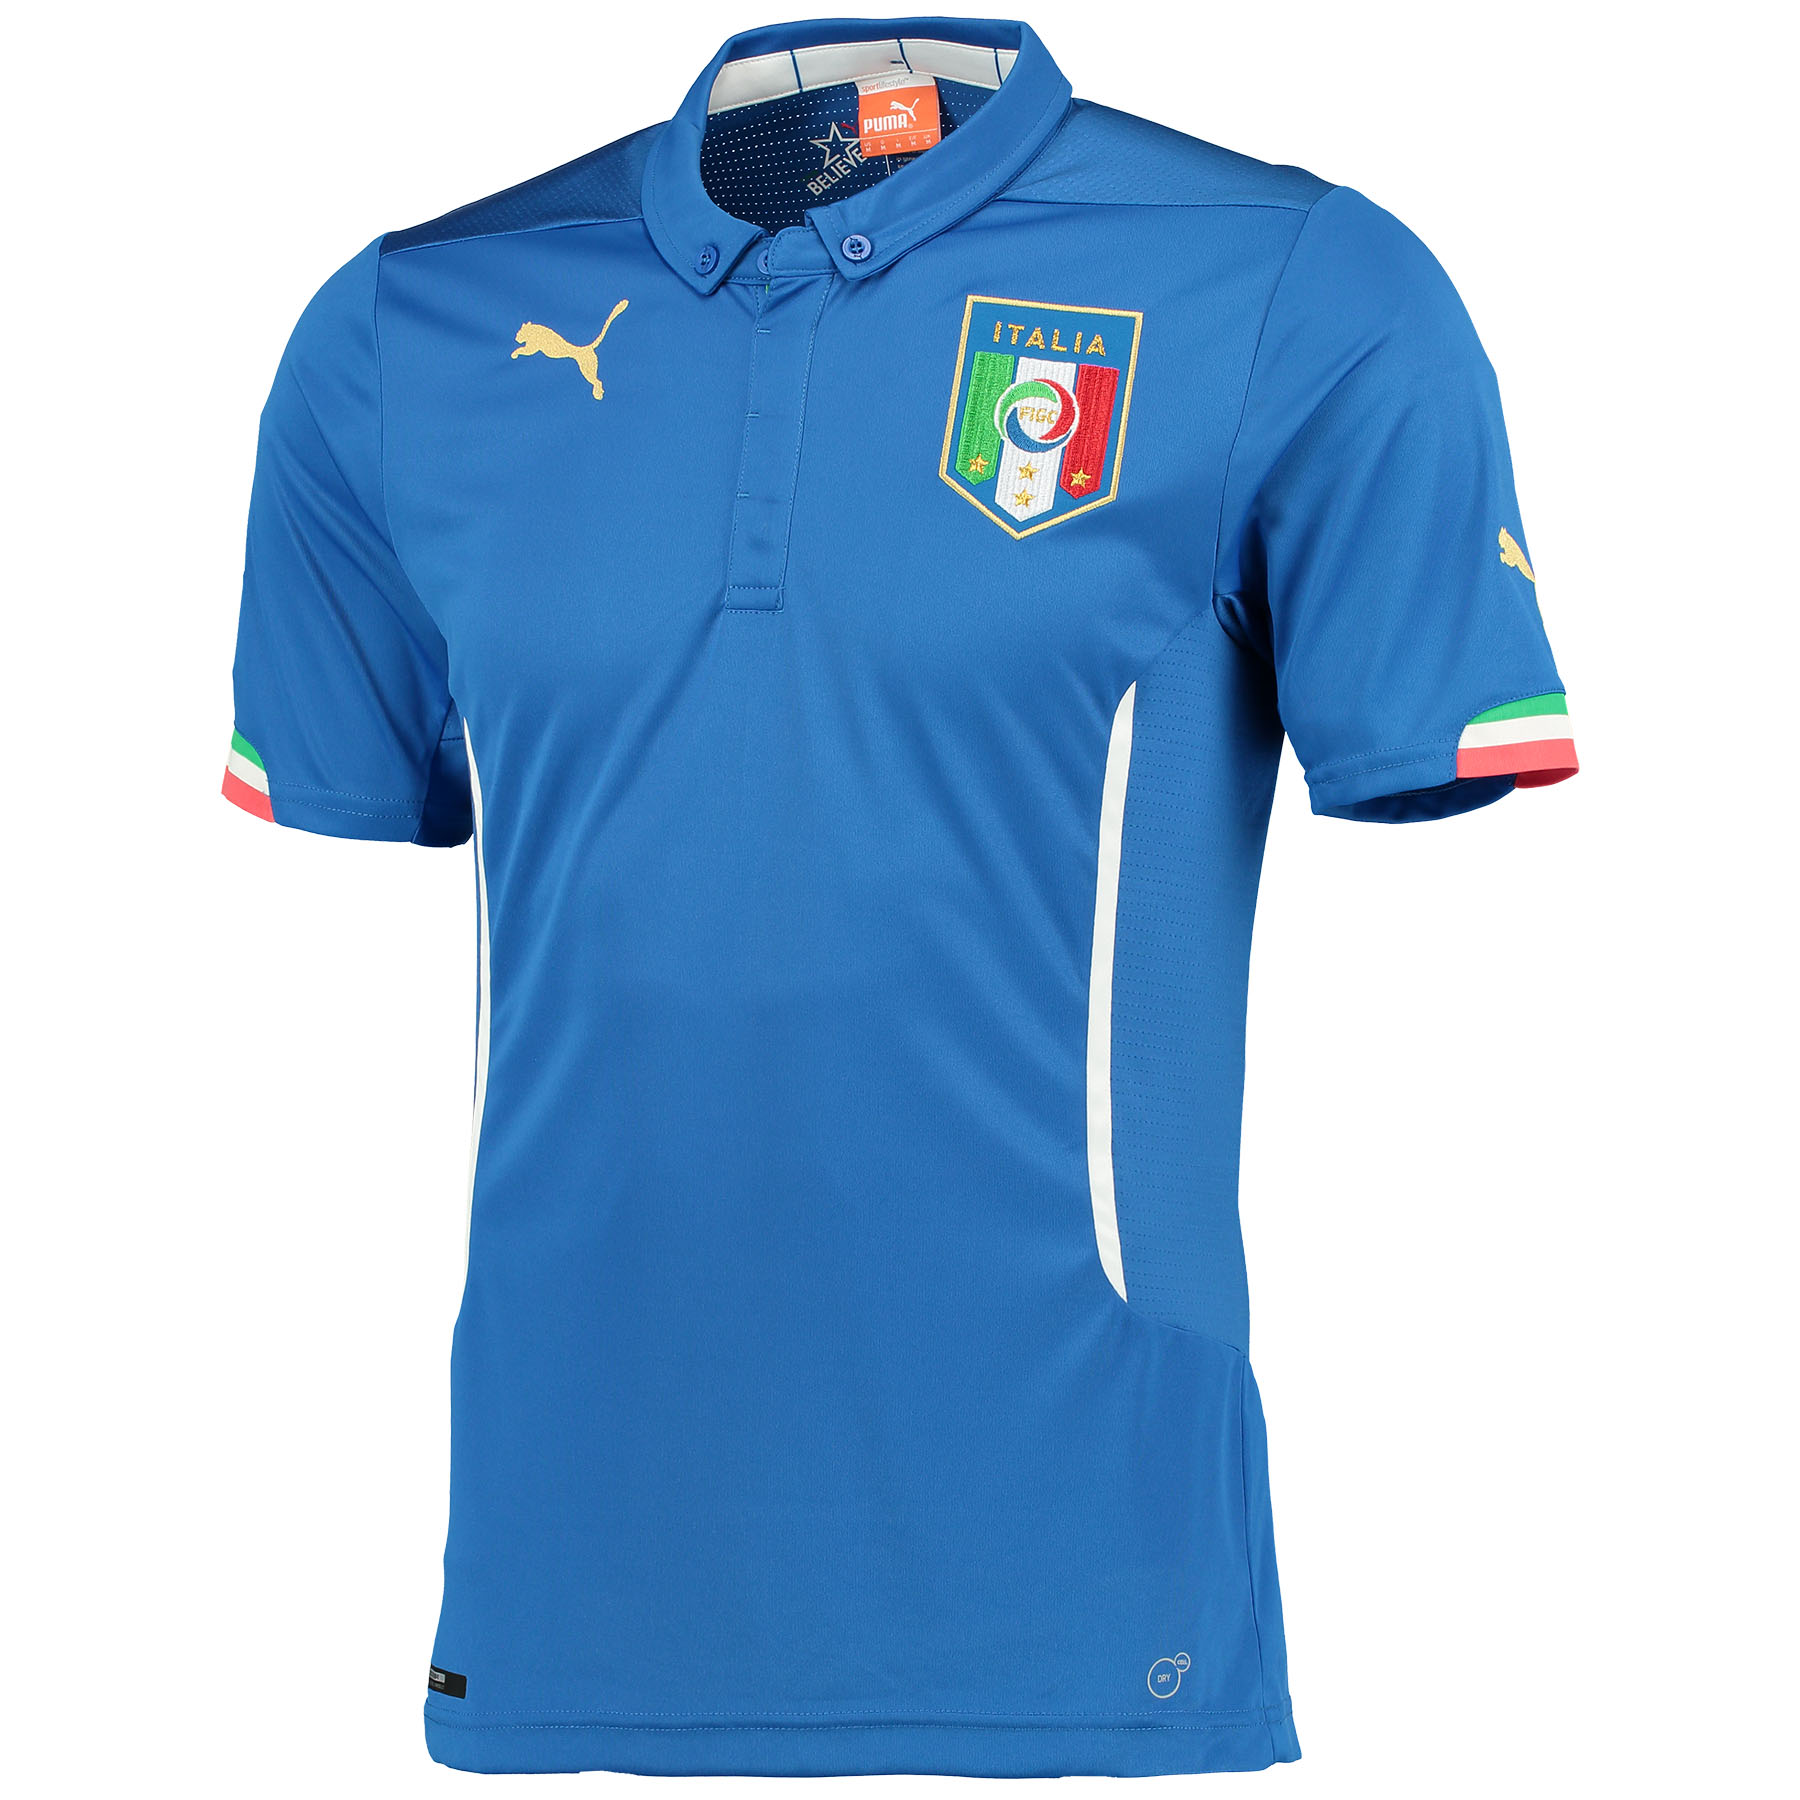 Italy Home Shirt 2013/14 with Pirlo 21 printing